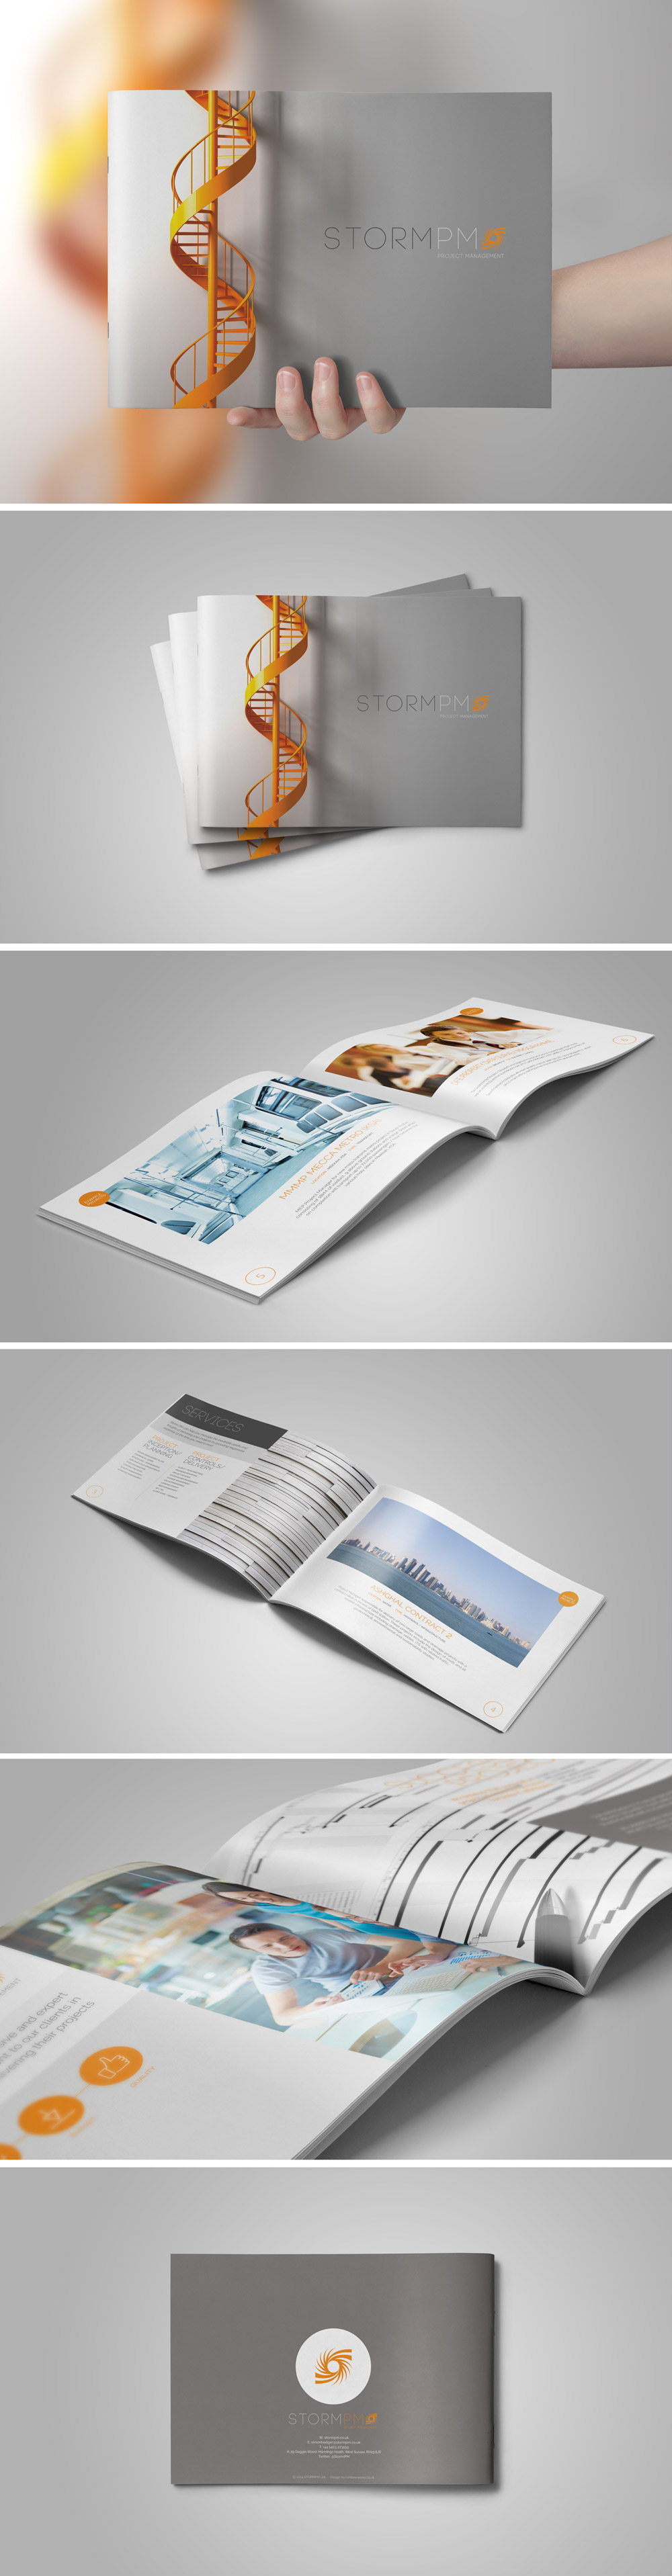 Series of images showcasing the Capability Statement Brochure design to expand the StormPM identity design